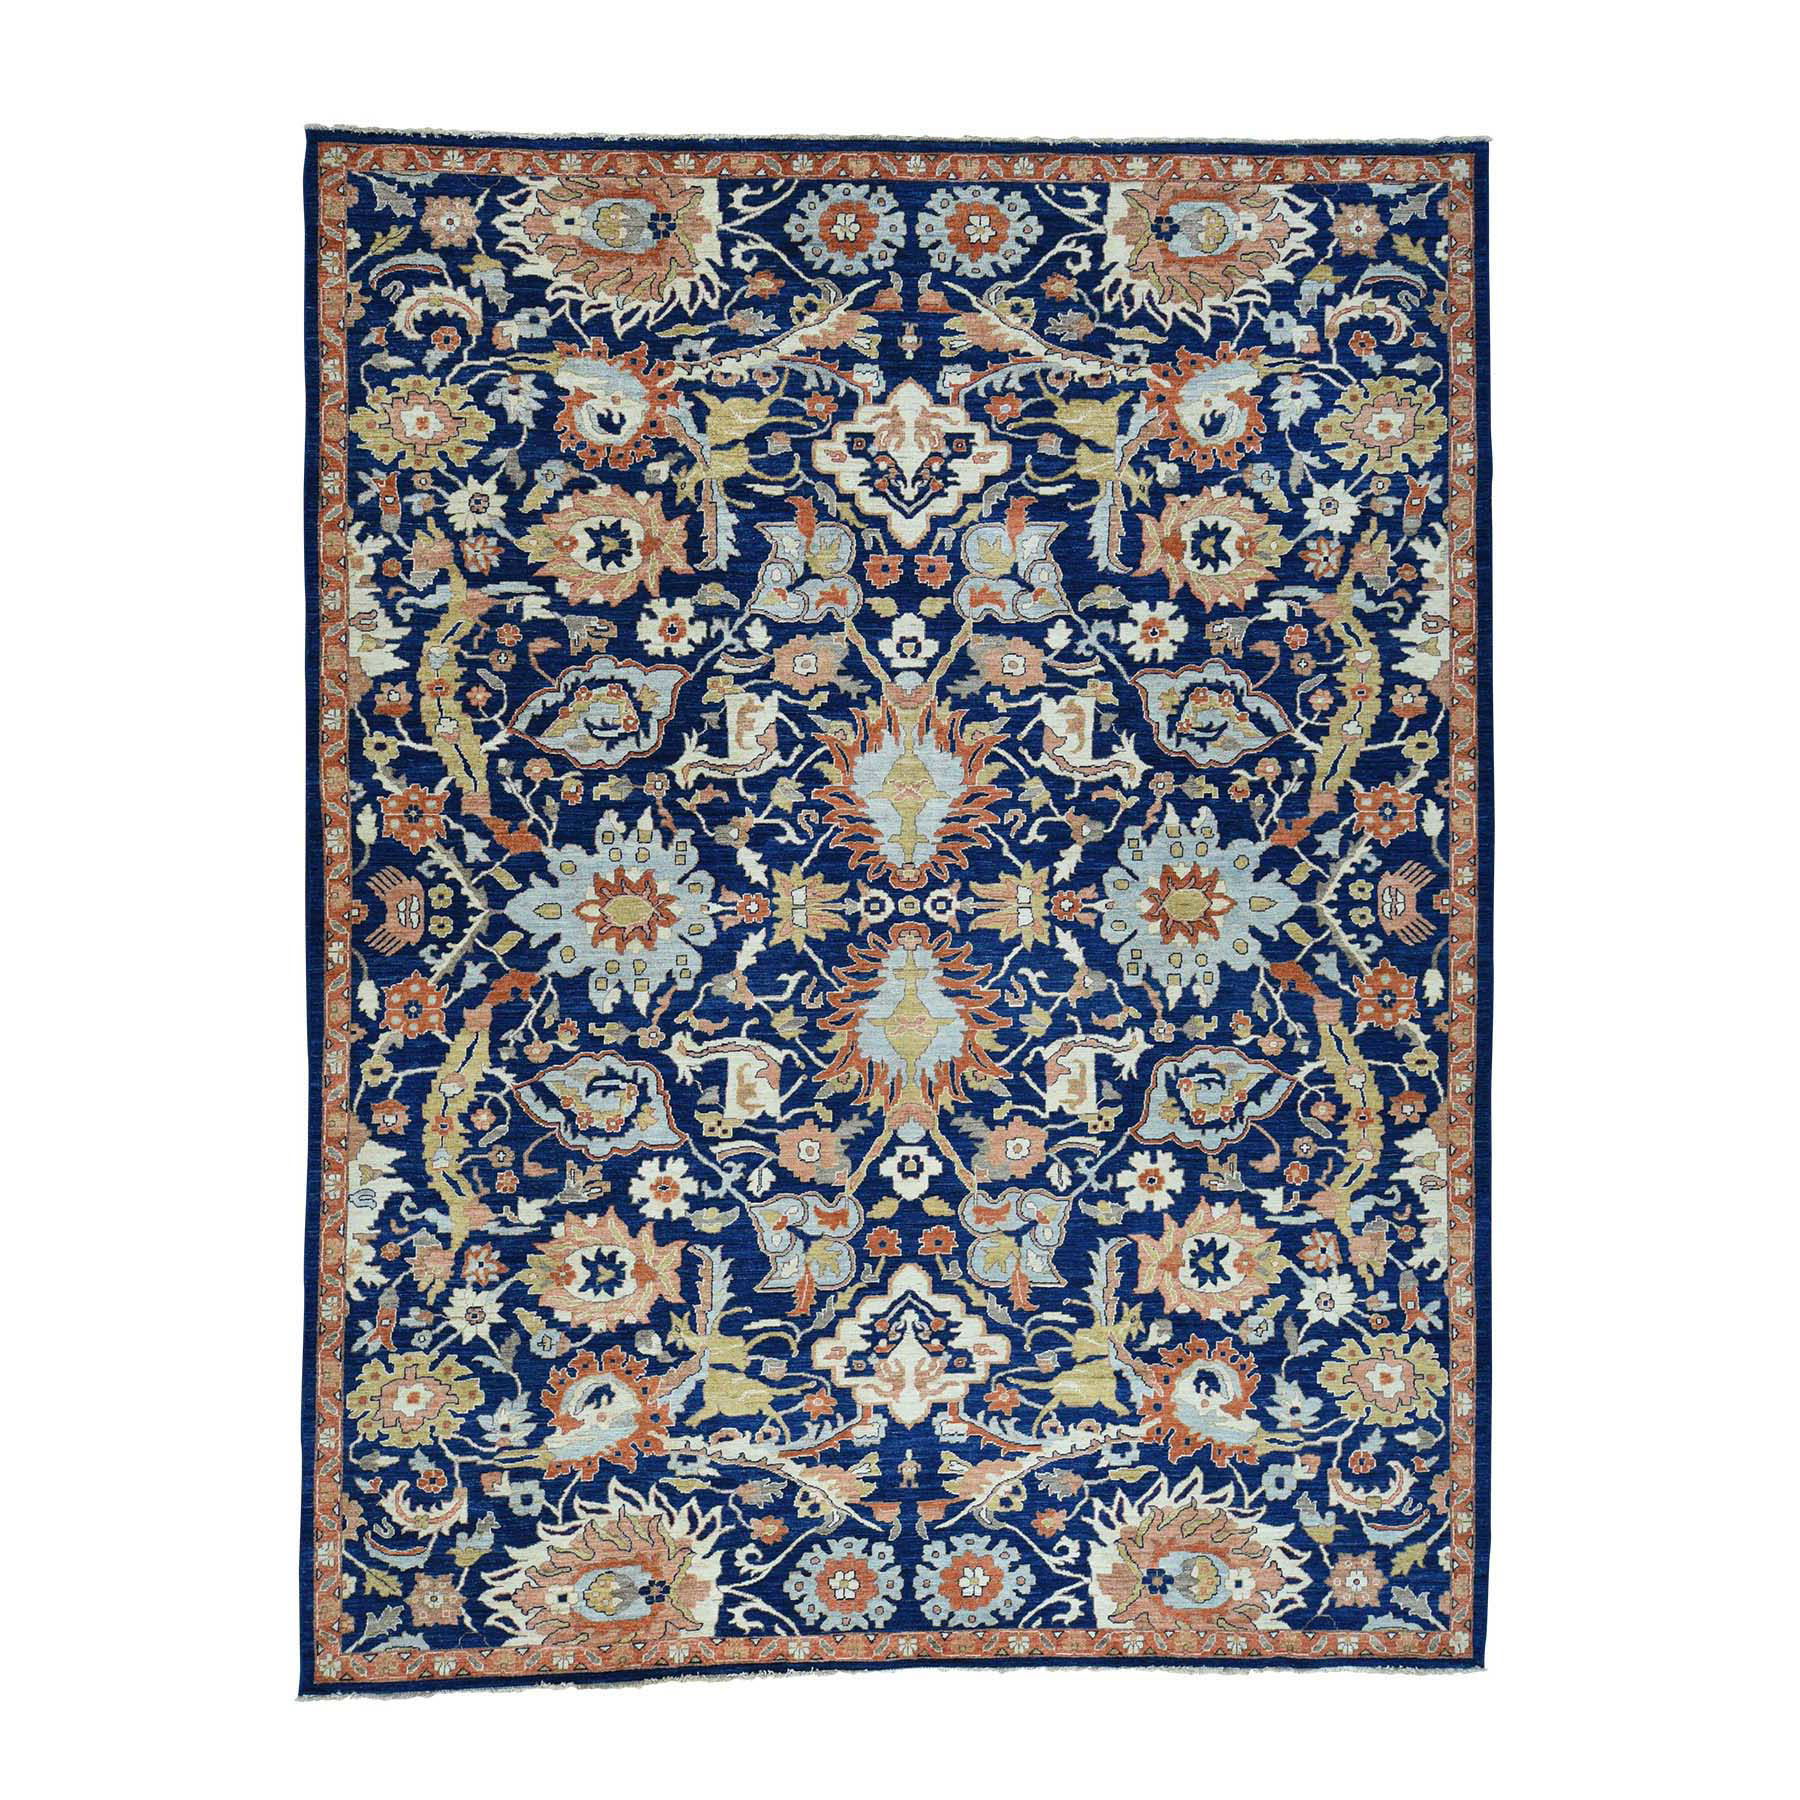 "9'x11'9"" Navy Blue Peshawar All-Over Sultanabad Design Hand Woven Rug"